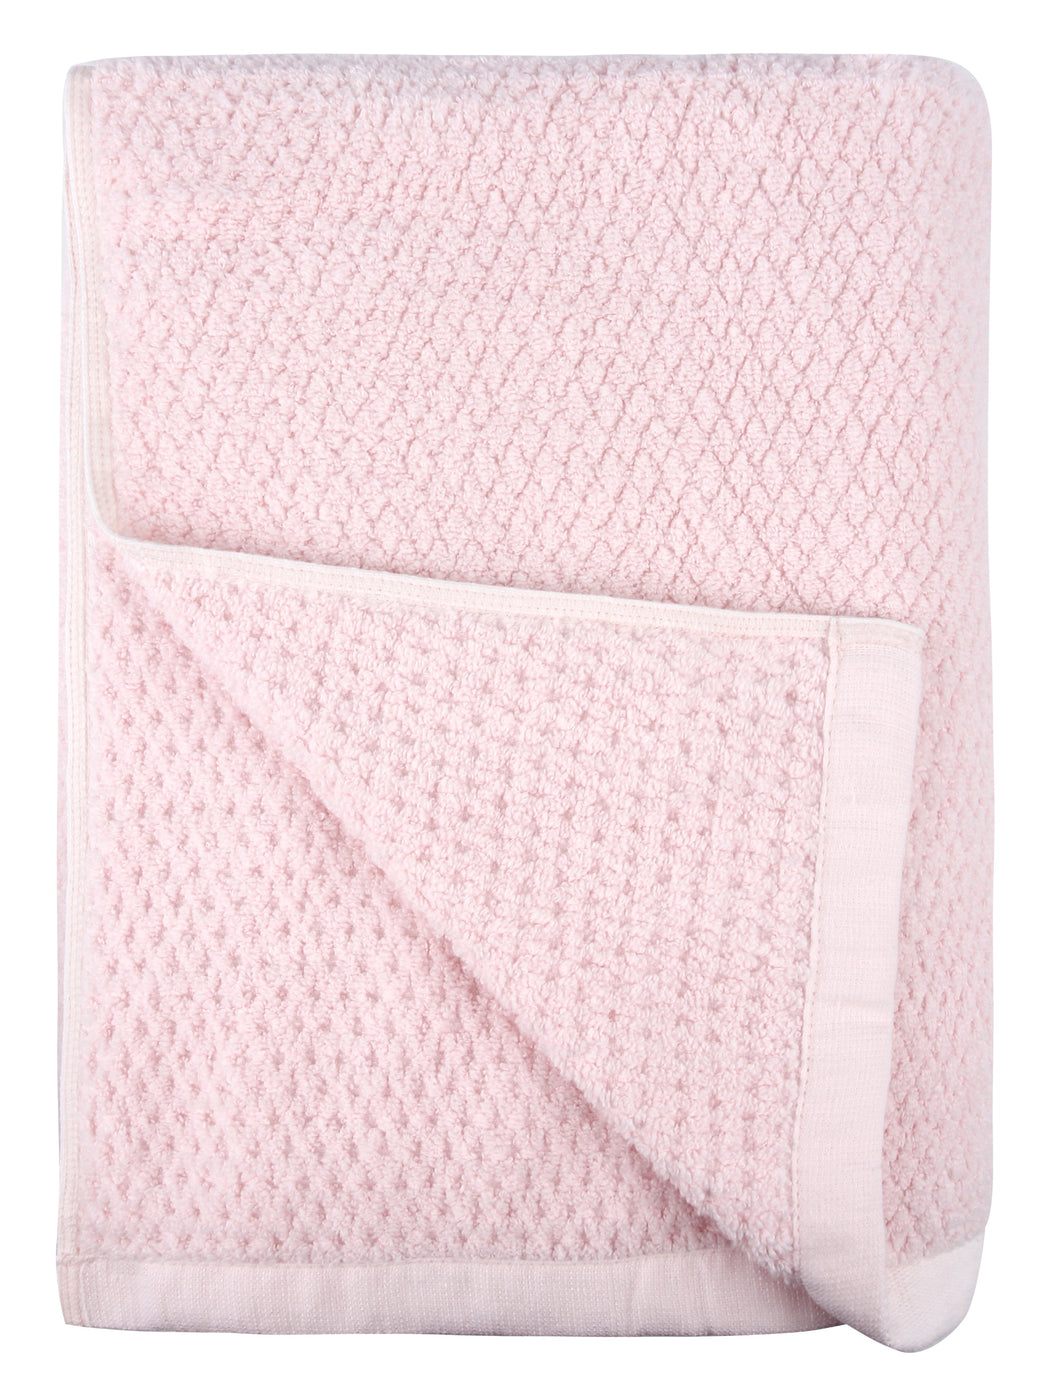 Diamond Jacquard Towels, Bath Sheet Towel - 1 Piece, Pale Pink